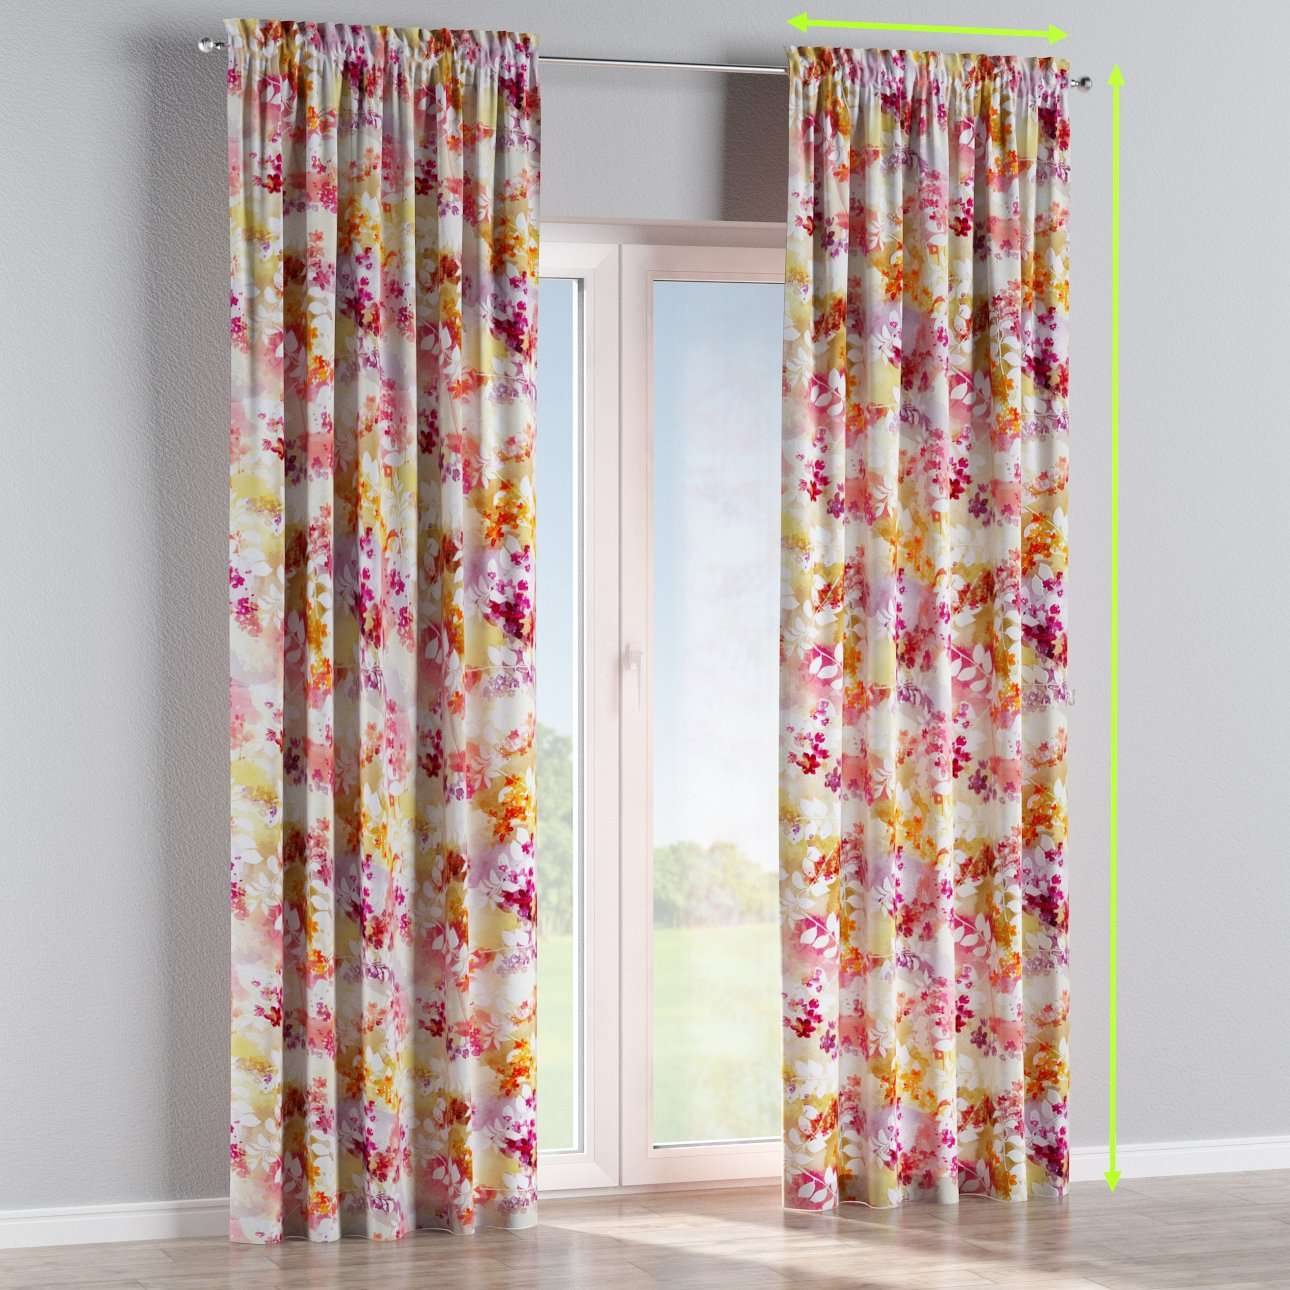 Slot and frill lined curtains in collection Monet, fabric: 140-05